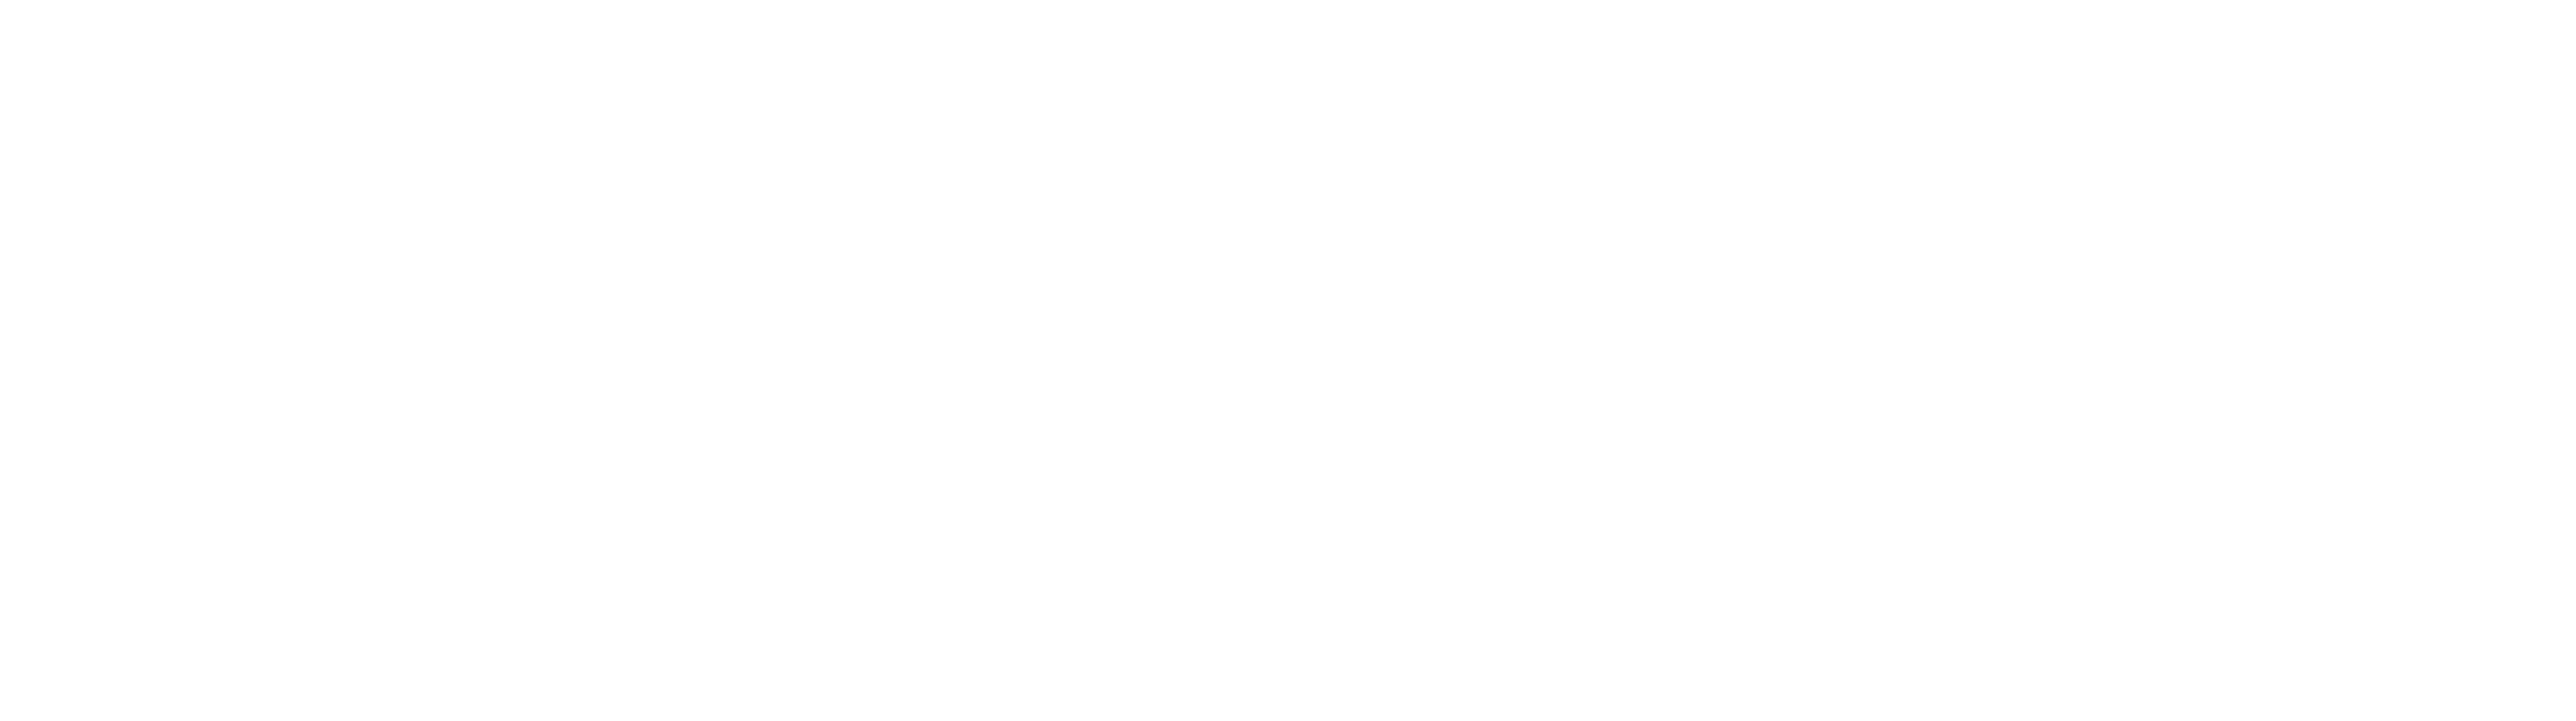 Letty's Designs & Home Decor - Flower Delivery in Le Claire, IA